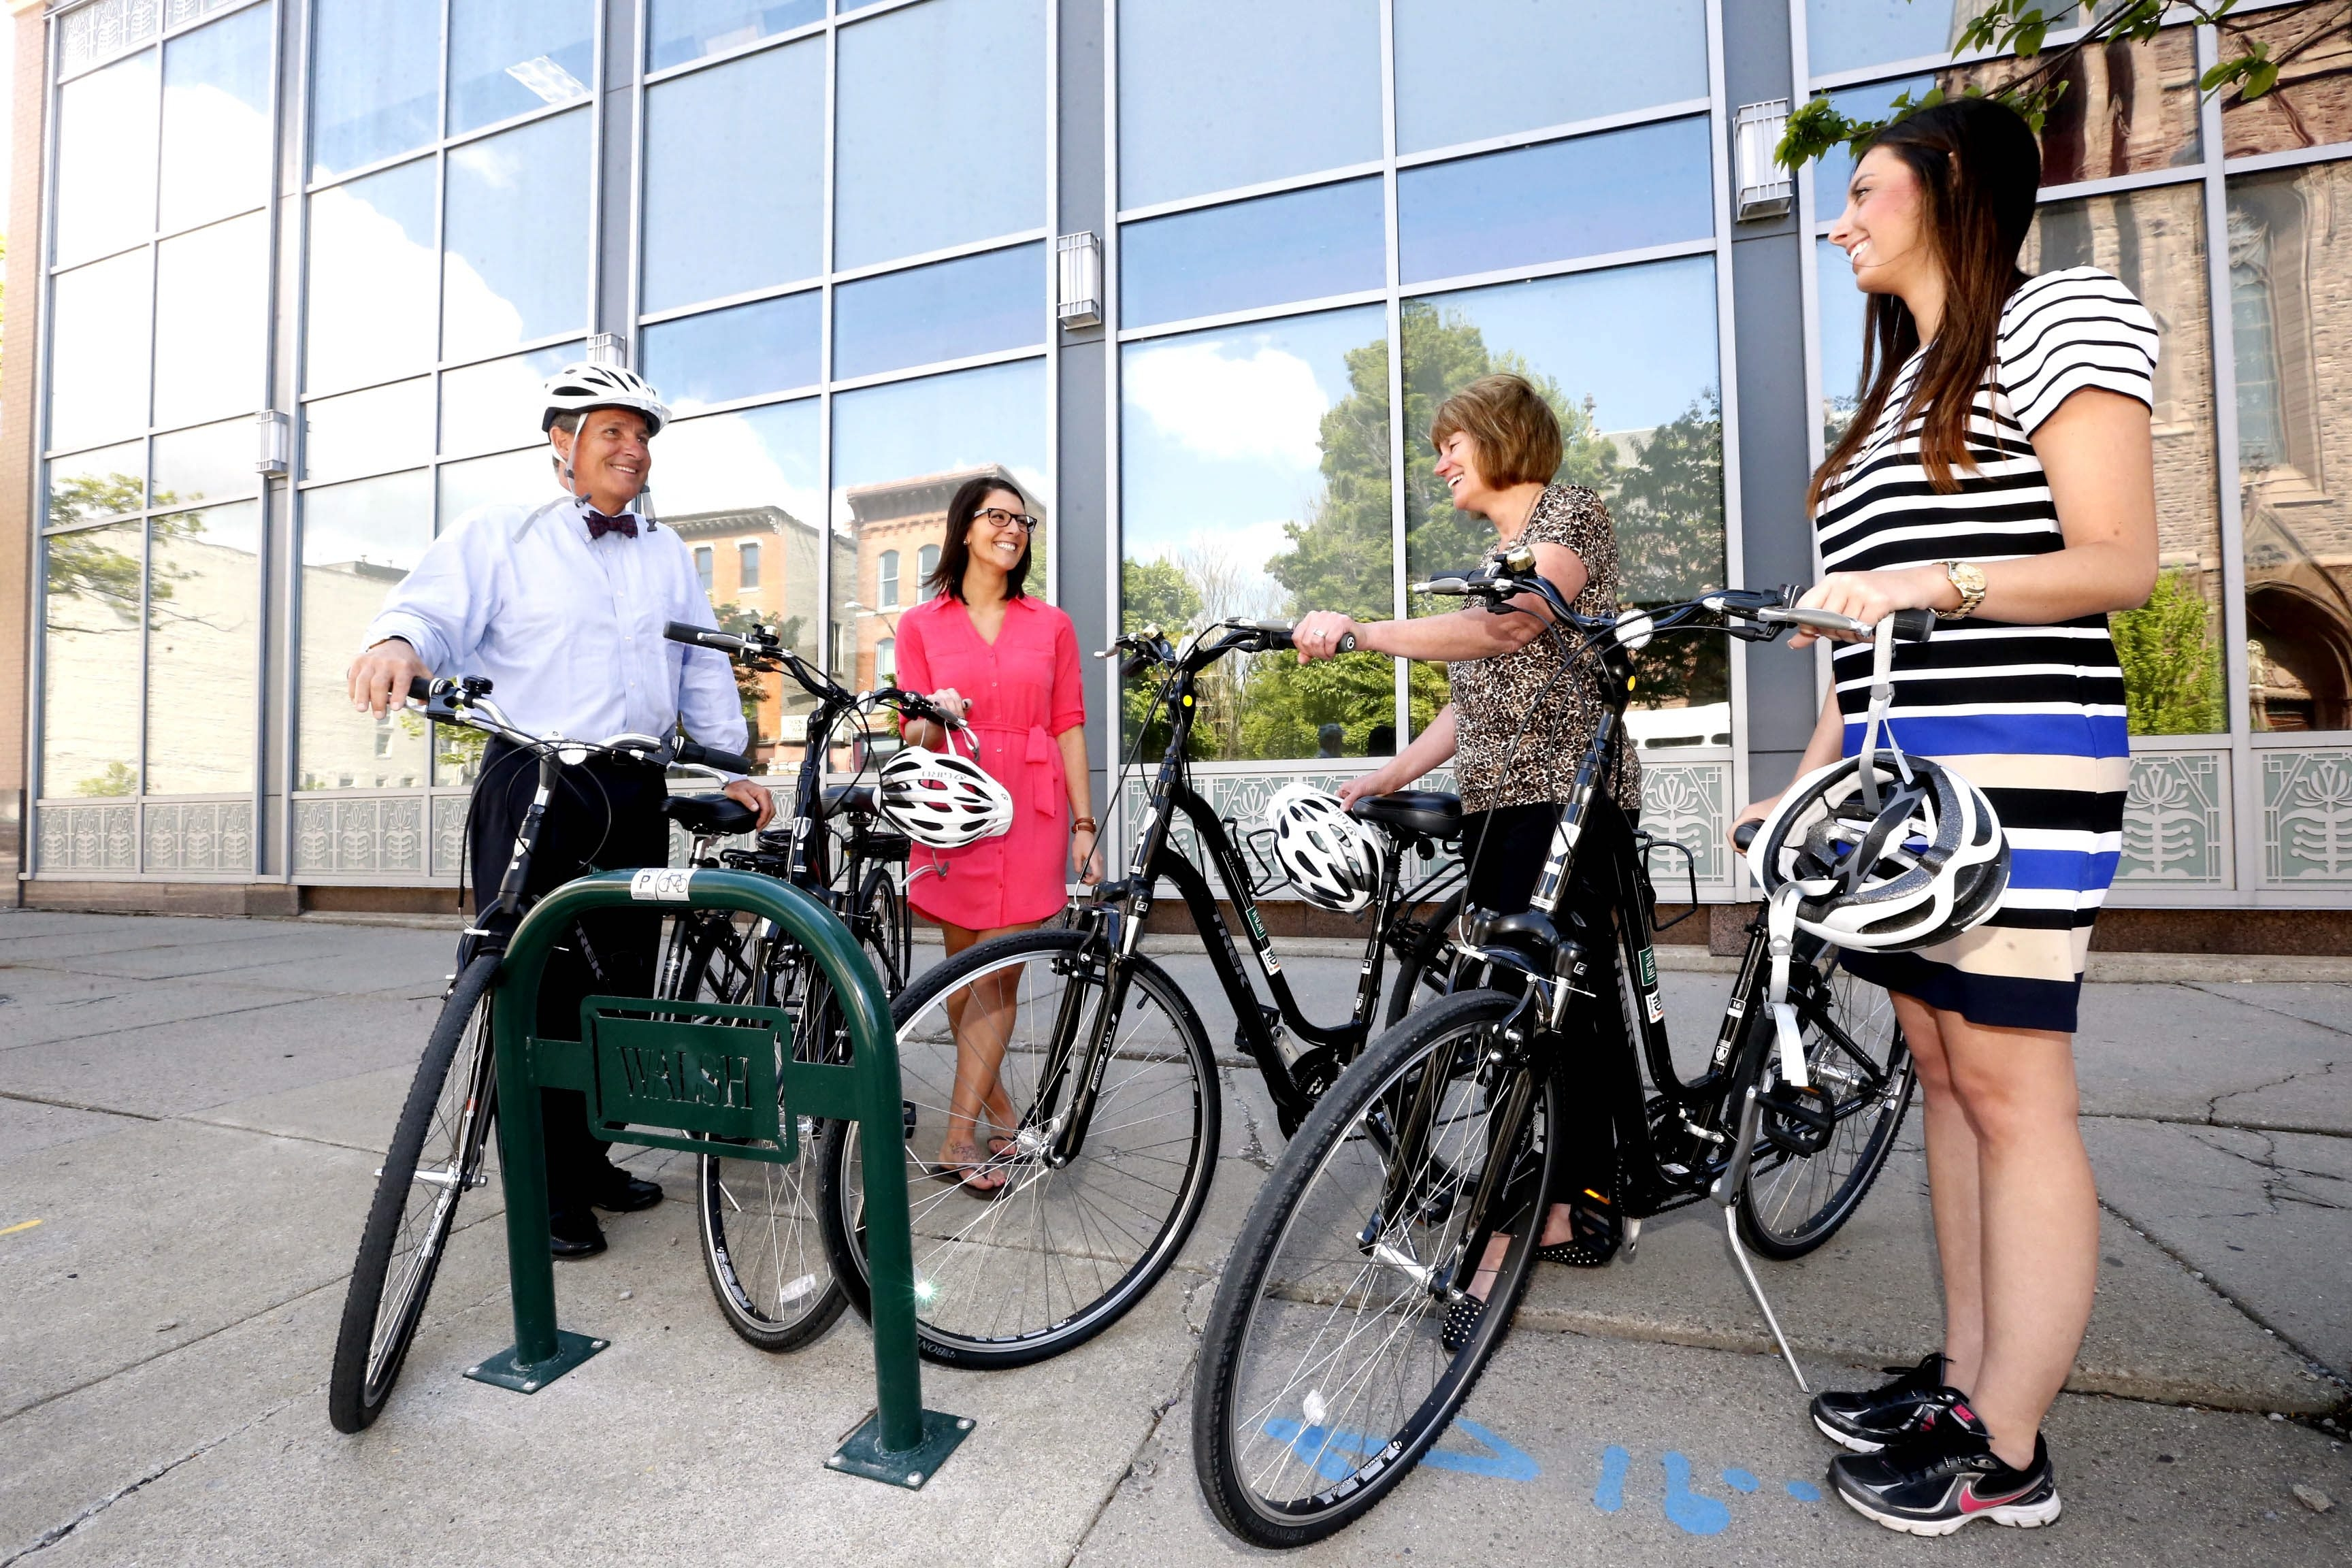 From left, Walsh Duffield chief operating officer Ted Walsh and fellow employees Karen Miranda, Kim Colvin and Megan Spiegelhoff get ready to take a company bike ride last week.